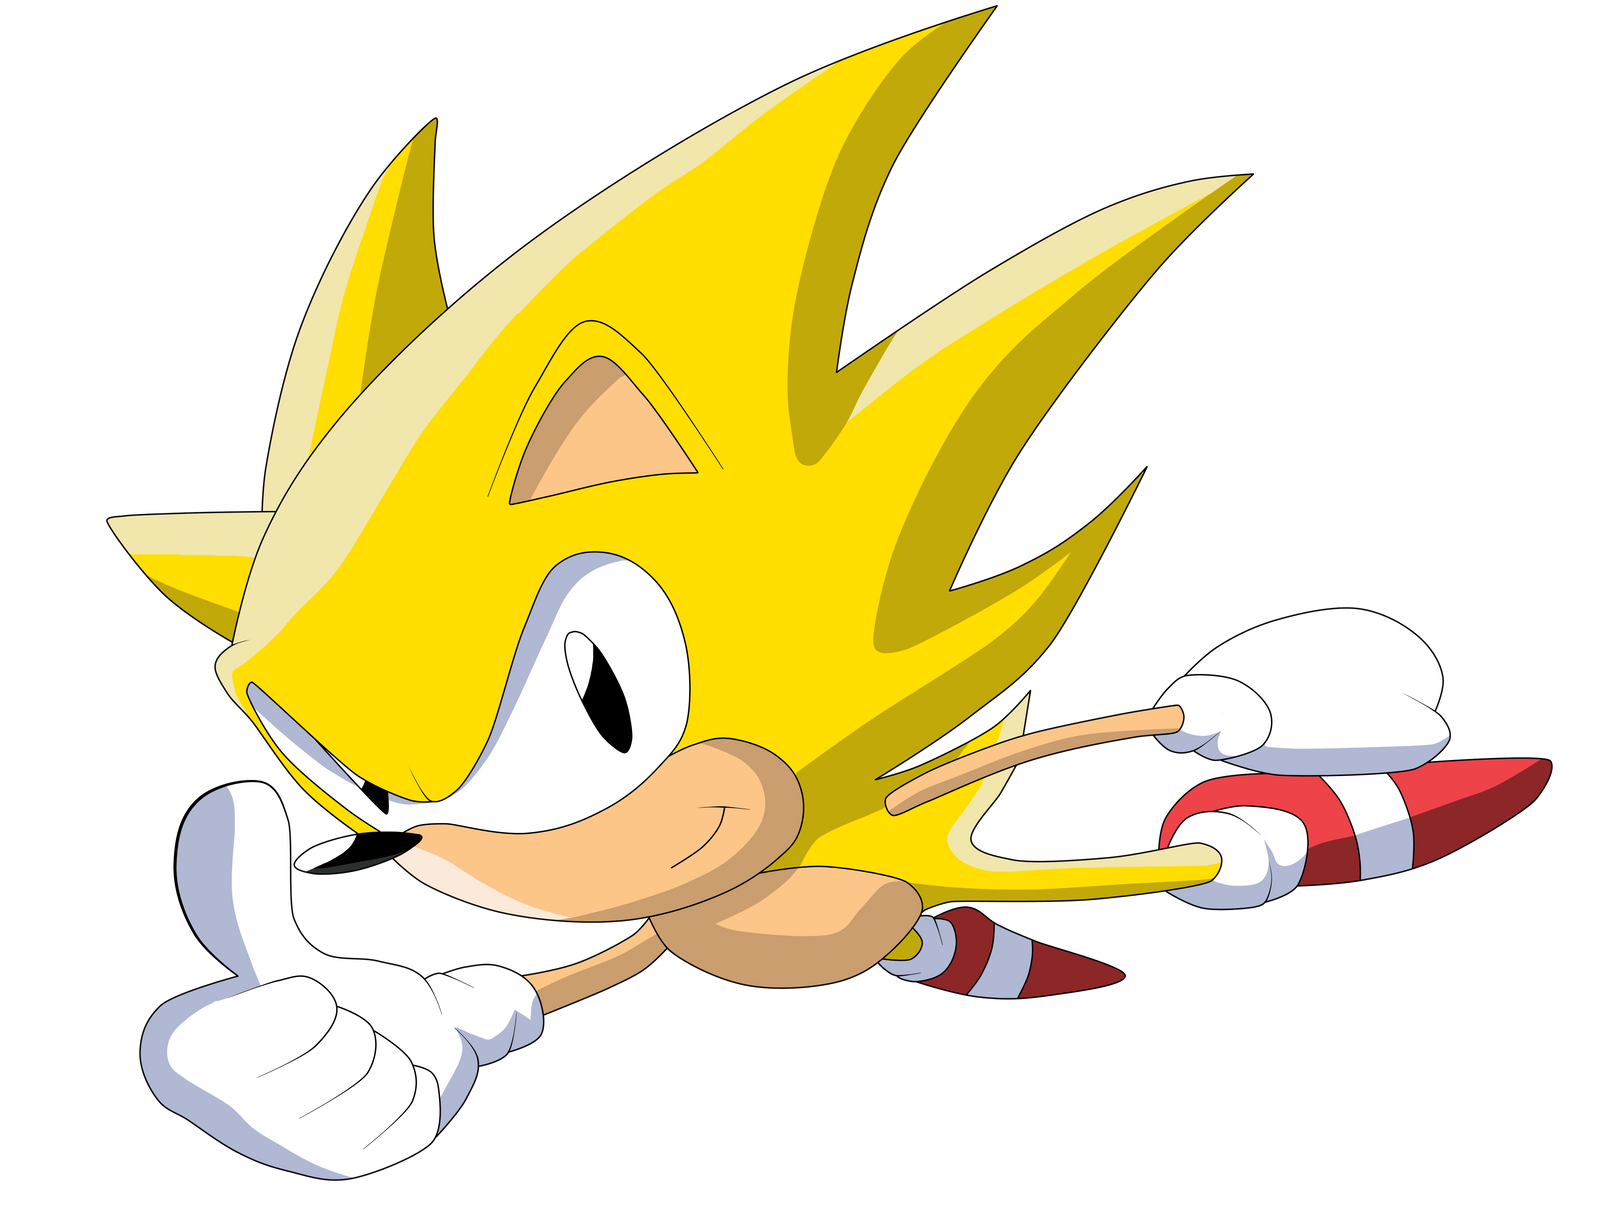 Super Sonic -Classic_ by Krizeii on DeviantArt